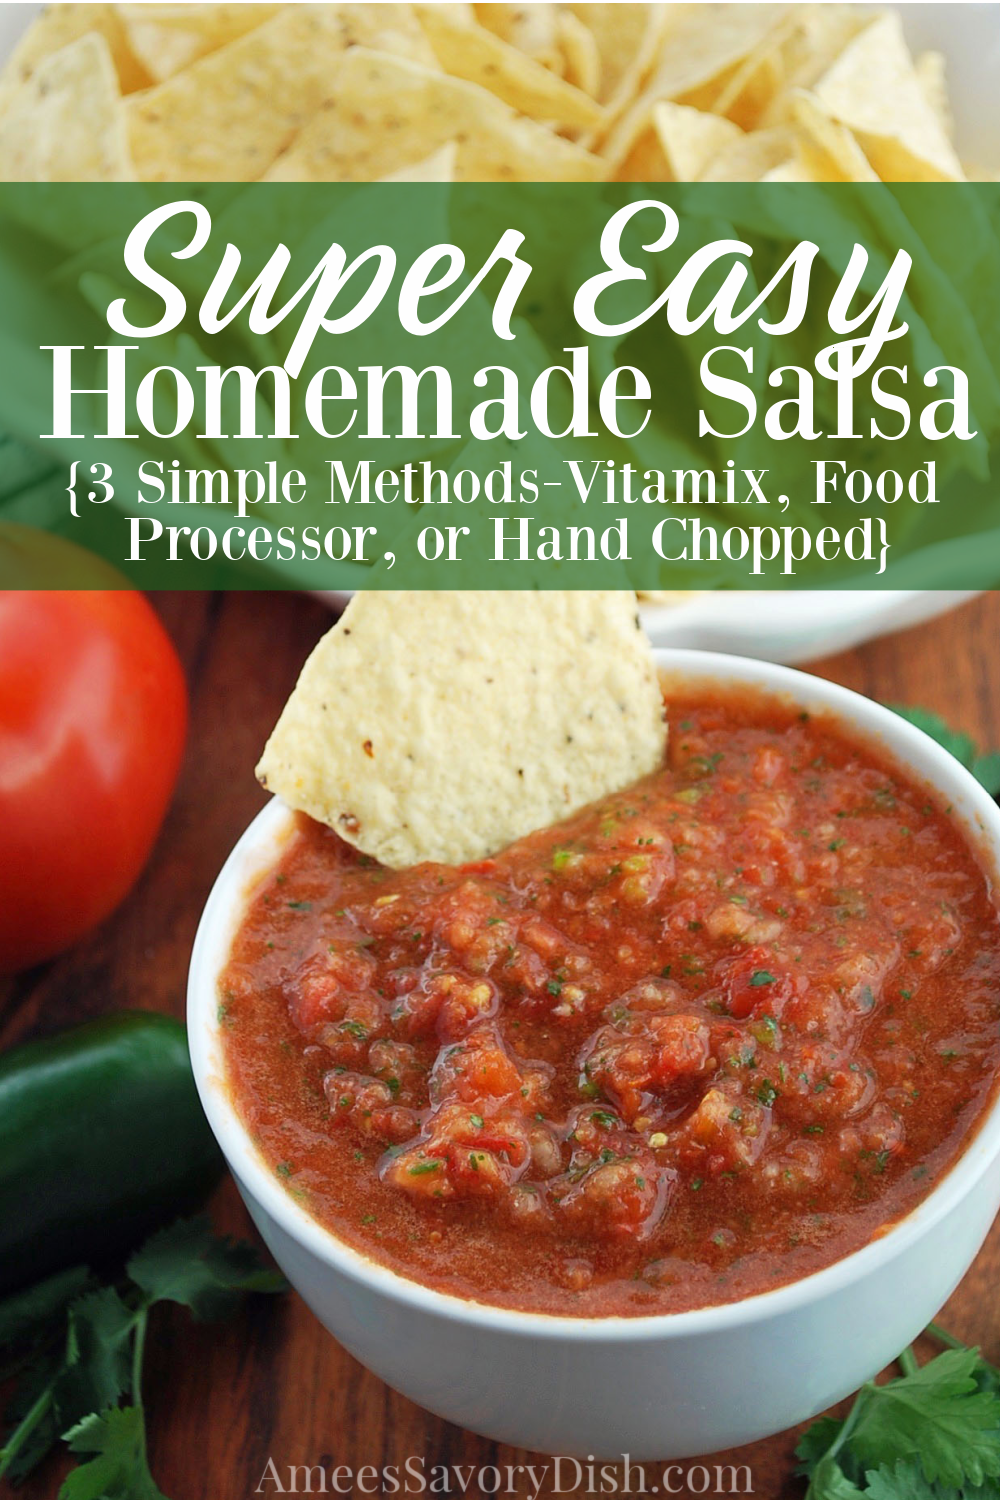 This homemadesalsa recipe made with fresh tomatoes, onion, jalapeño, lime juice, and fresh cilantro. There's no need to buy salsa when it's this easy to make! #homemadesalsa #freshsalsa #easysalsa #salsarecipe via @Ameessavorydish